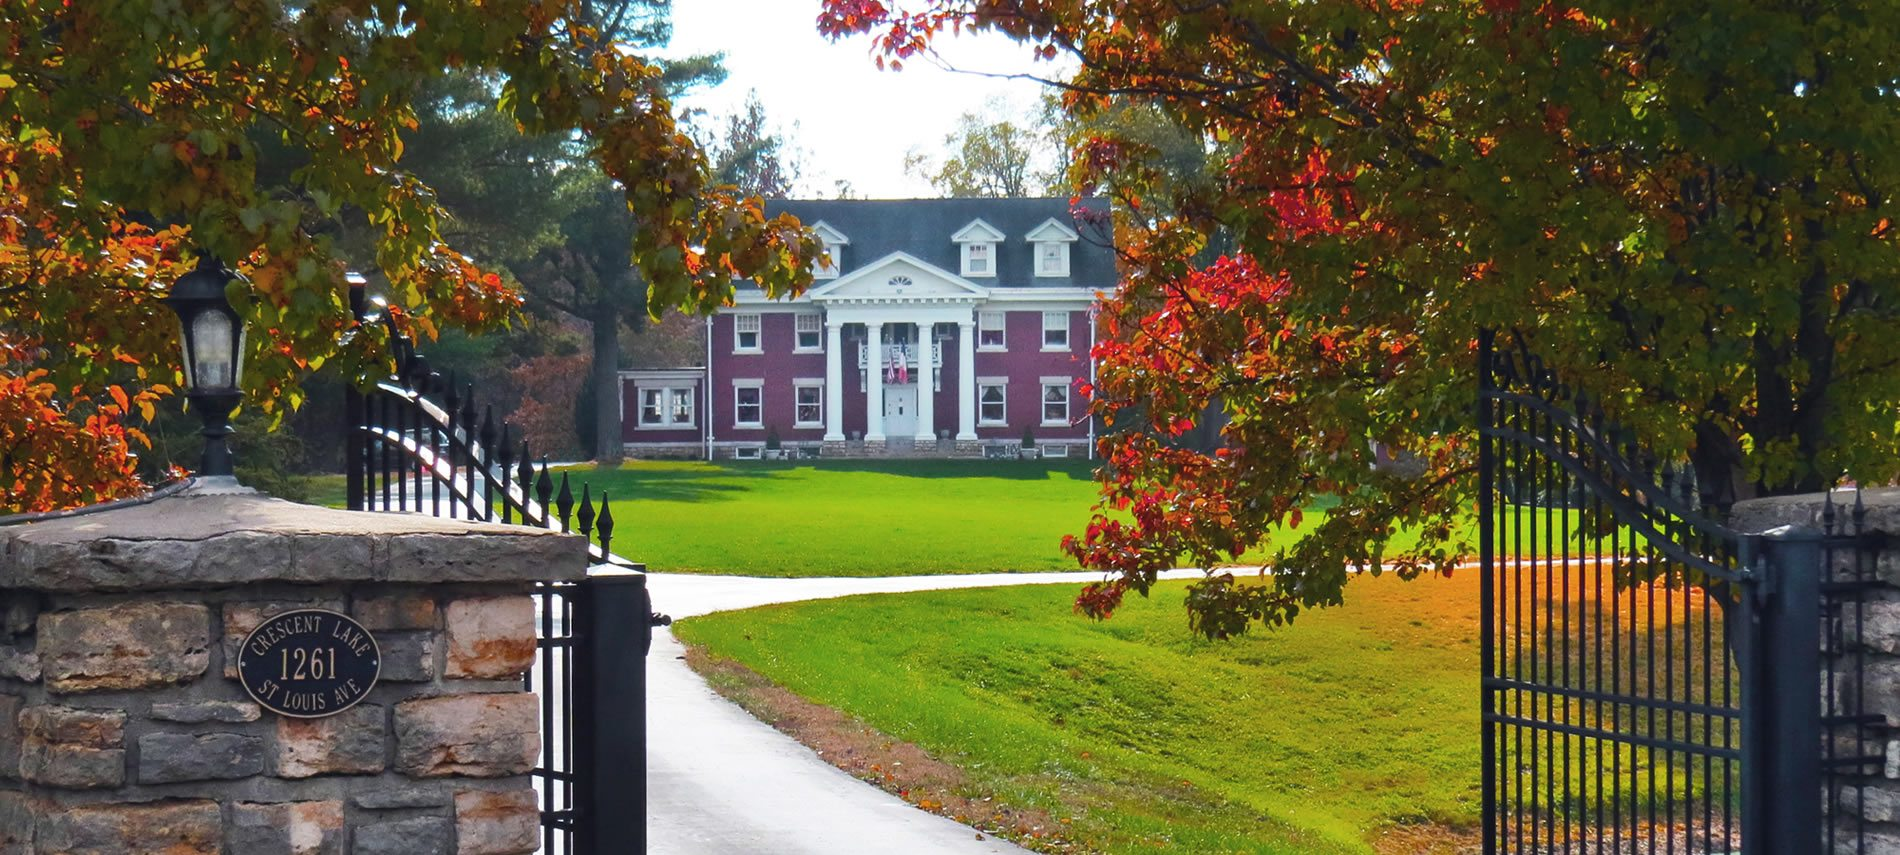 A gated entrance to a driveway with a red brick mansion with four white columns visible in the distance